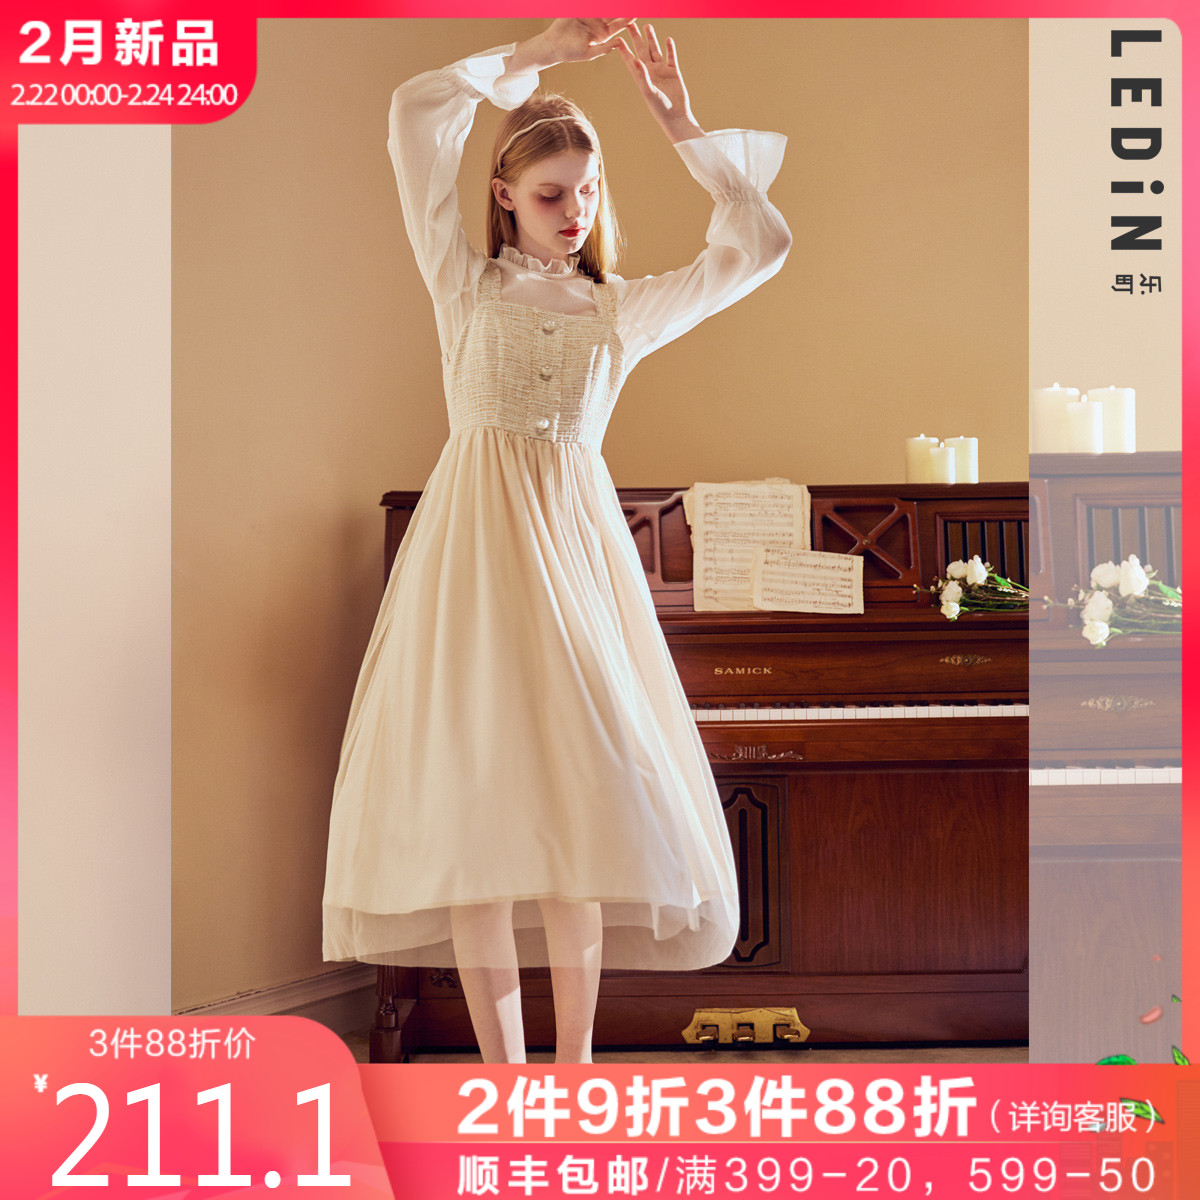 New Le Ding patchwork dress new spring women's patchwork mesh dress sweet suspender dress in 2020